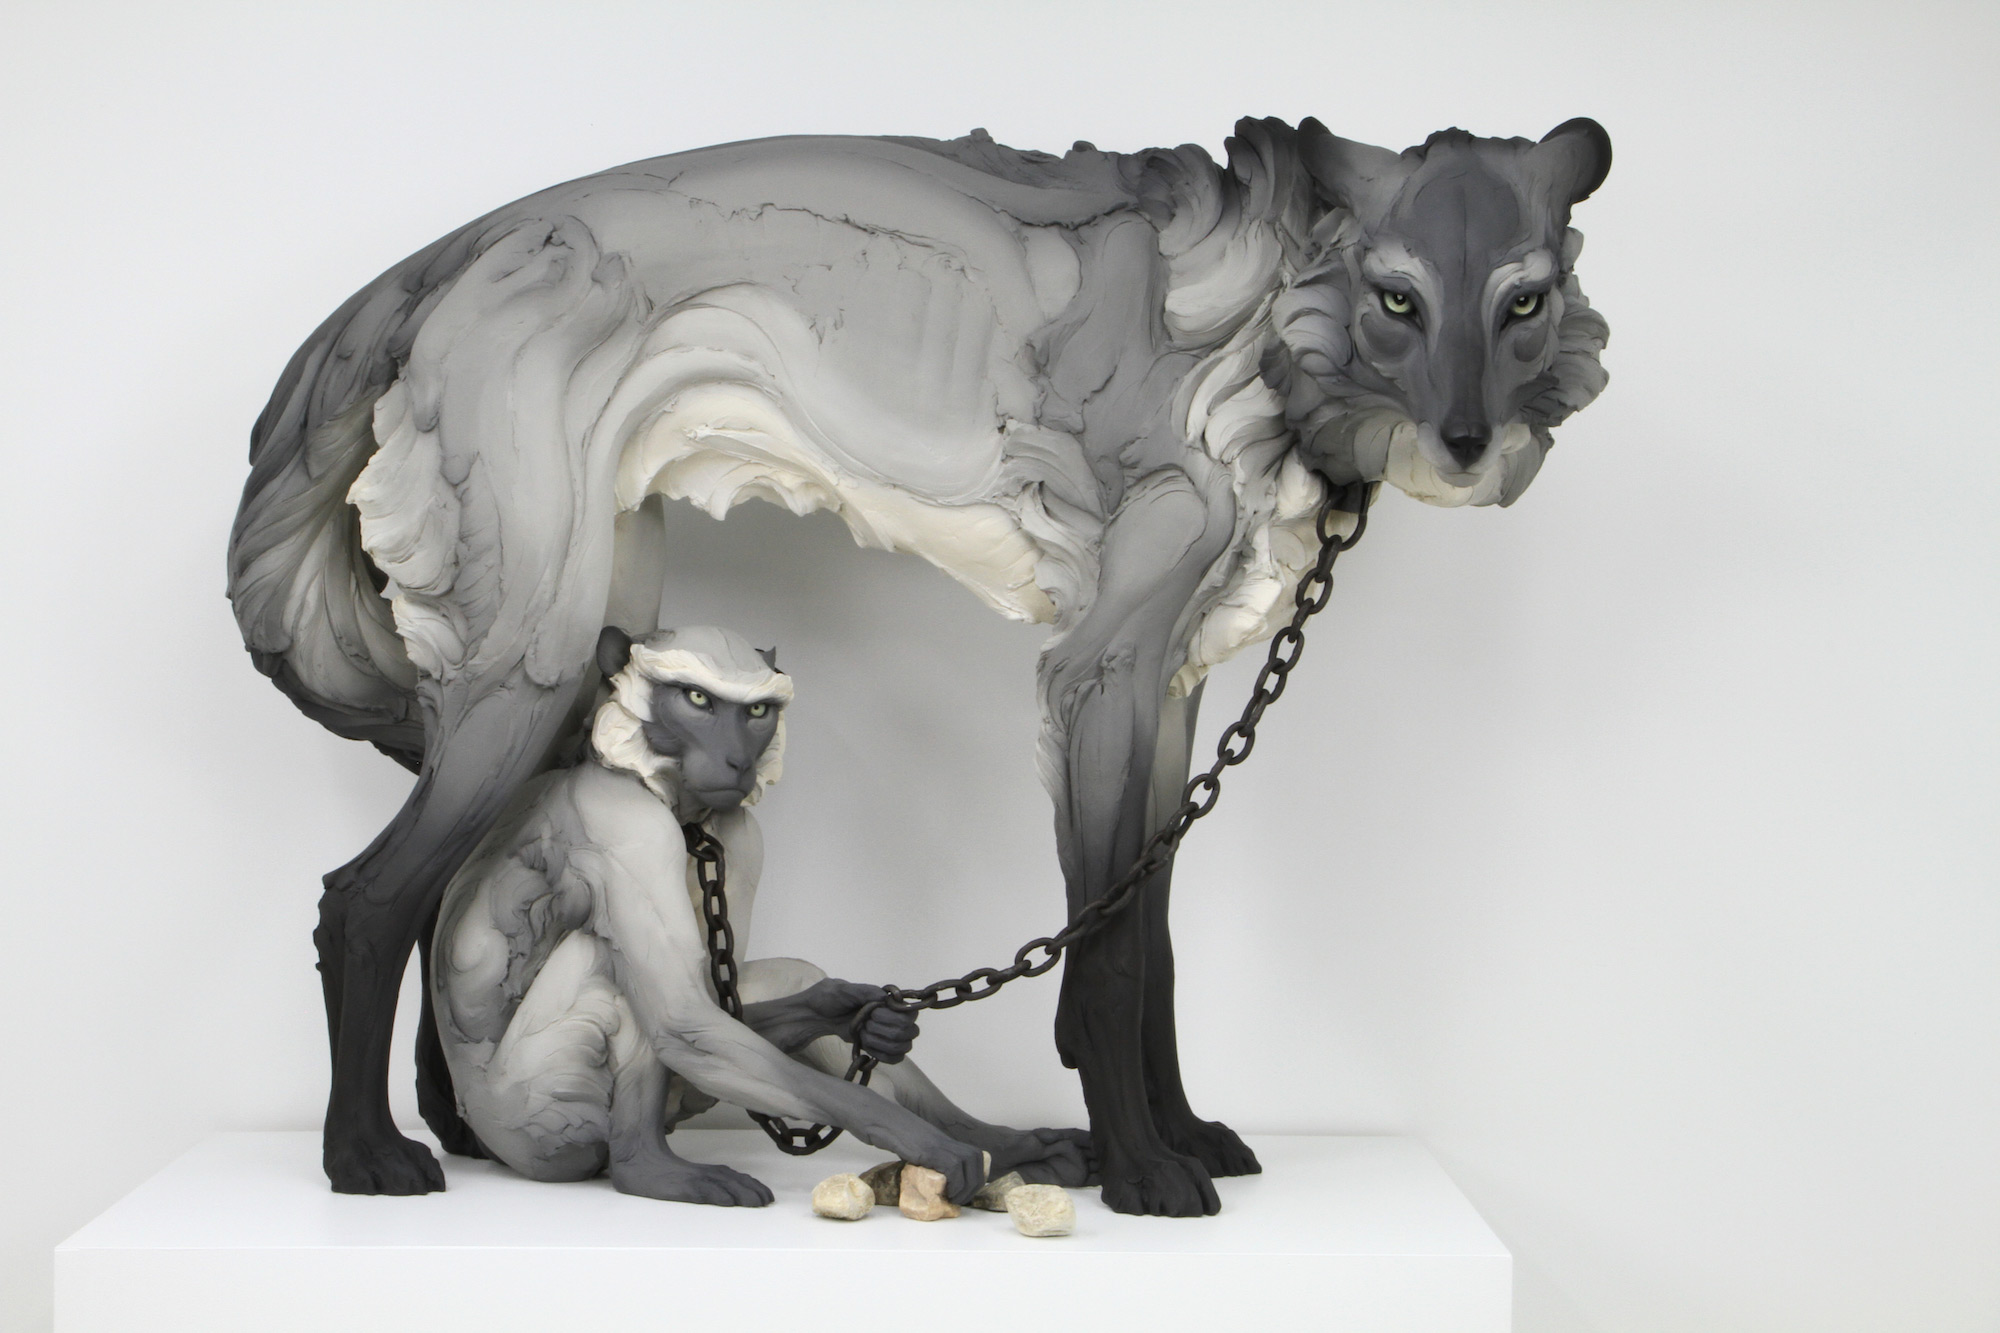 Tribute (Wolf and Monkey) , 2017. Stoneware, paint, hand-forged steel collars and chain. 46h x 58w x